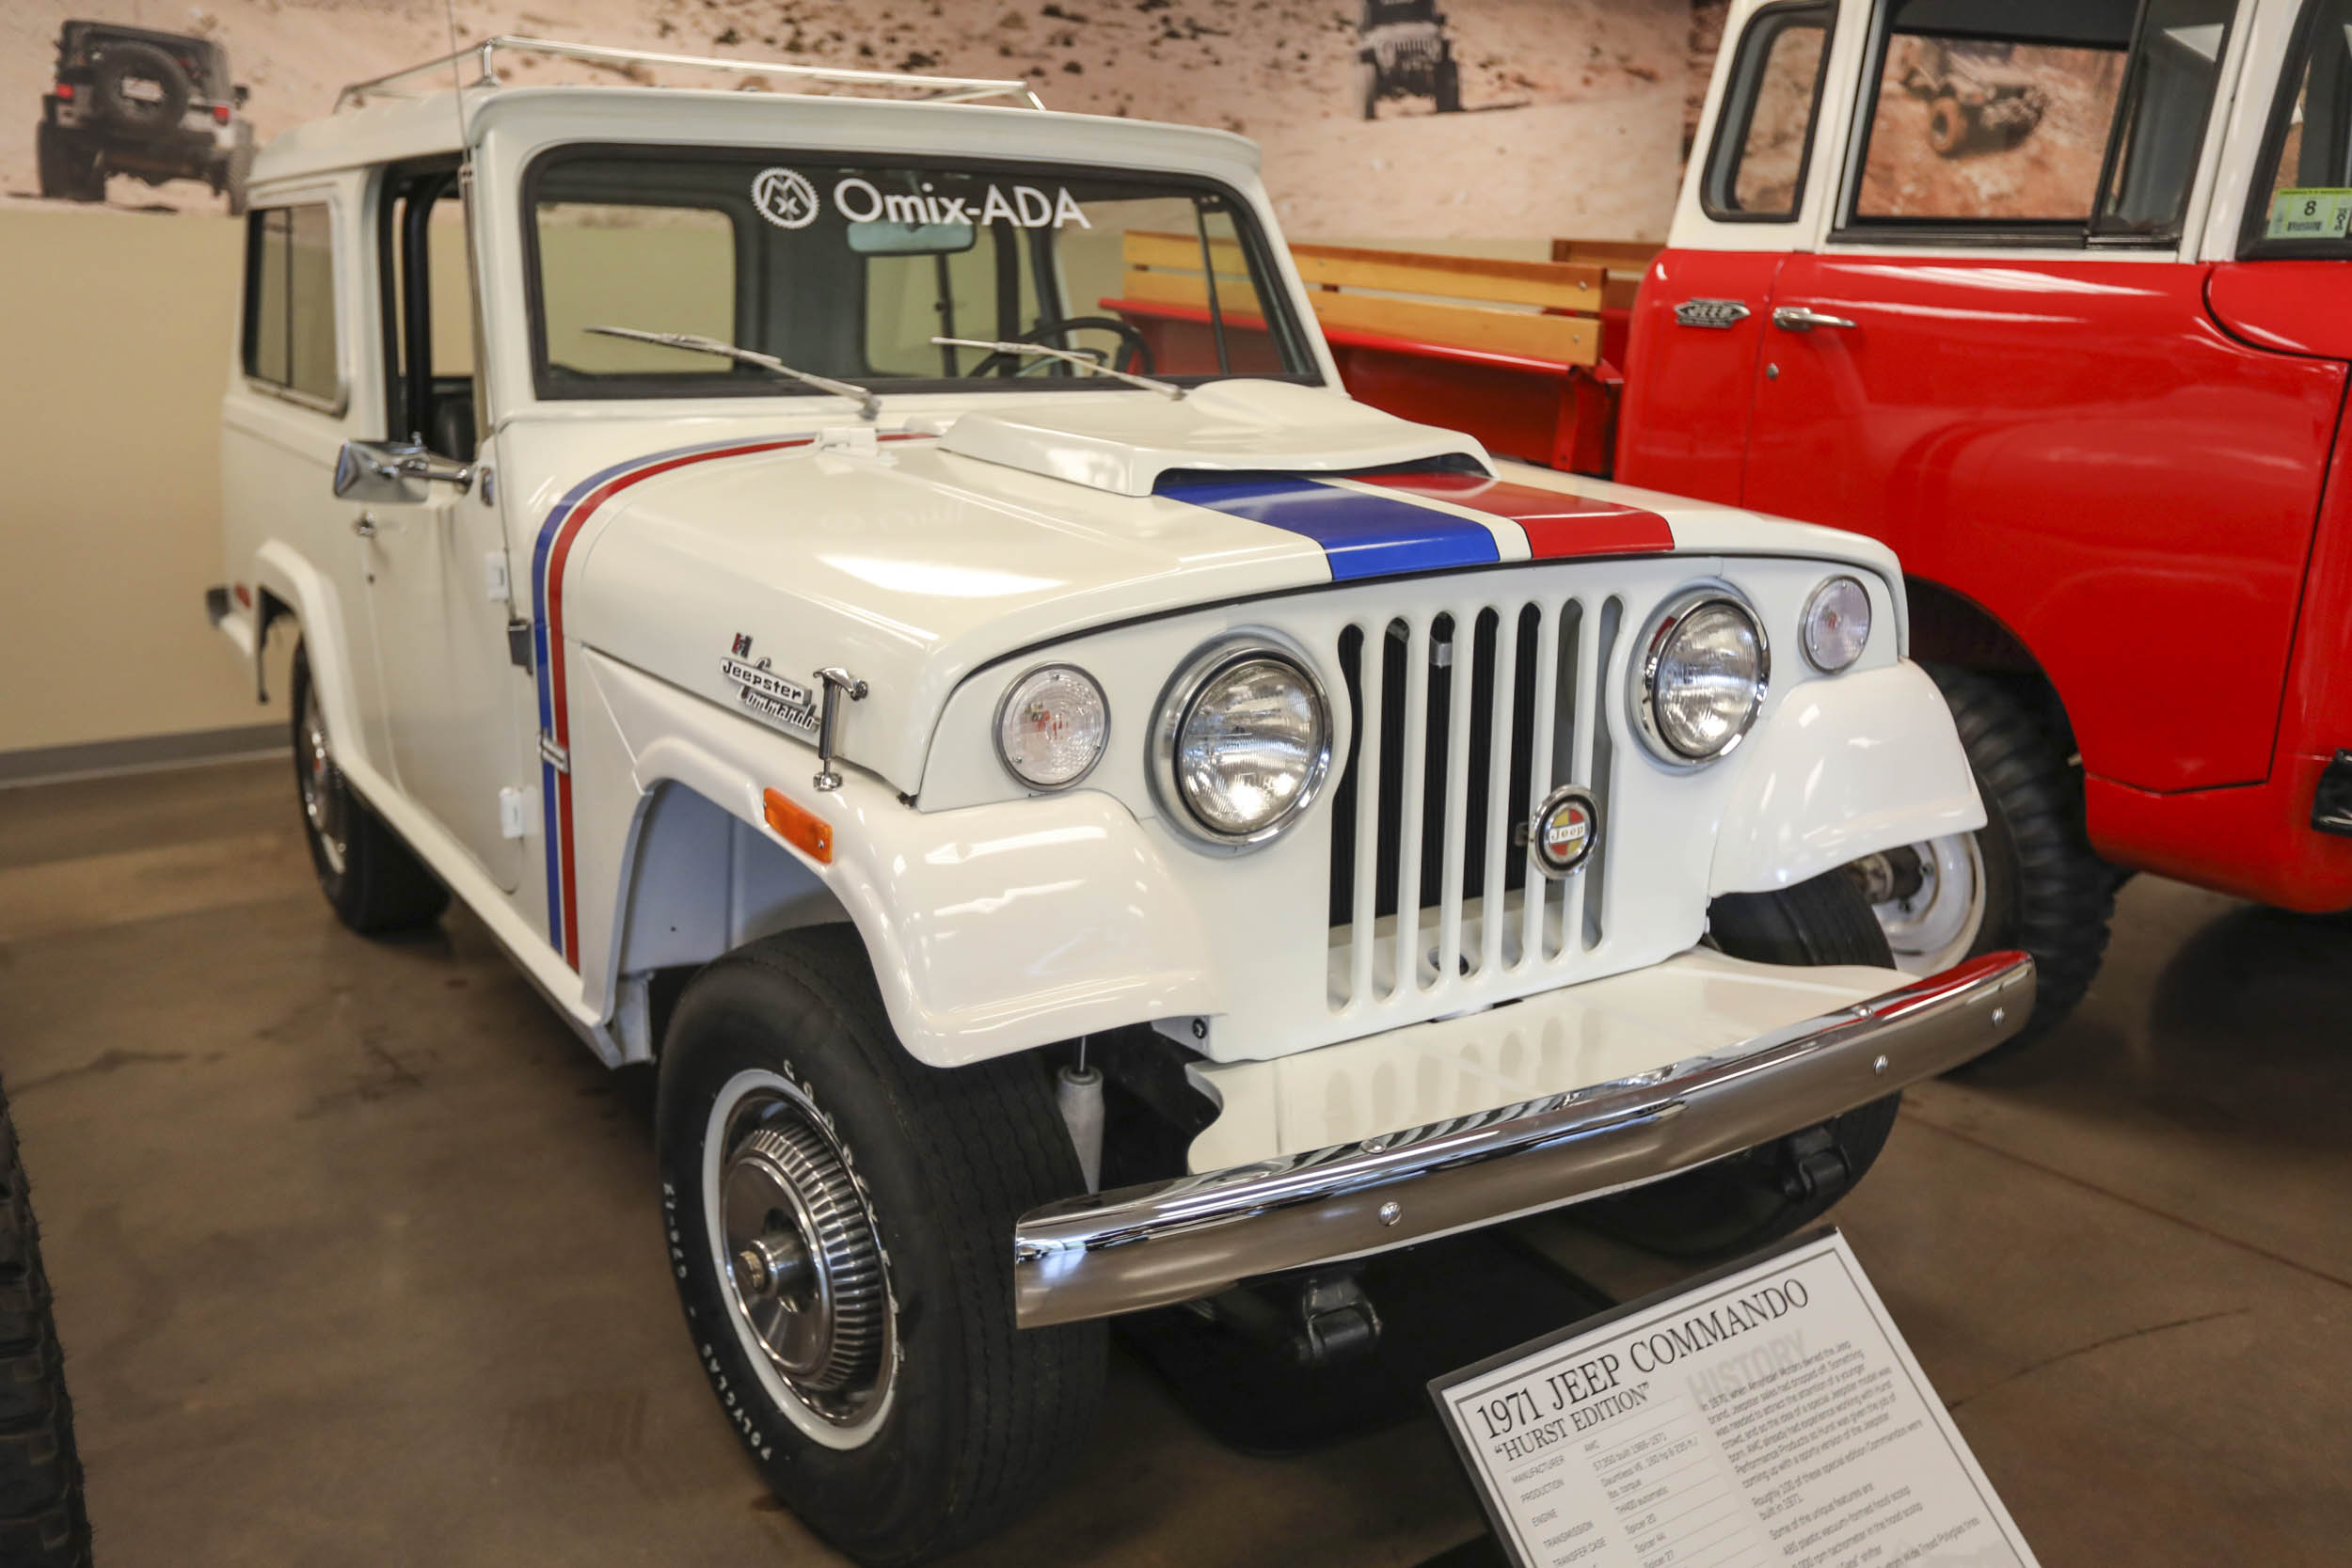 1971 Hurst edition Jeepster Commando was AMC's attempt